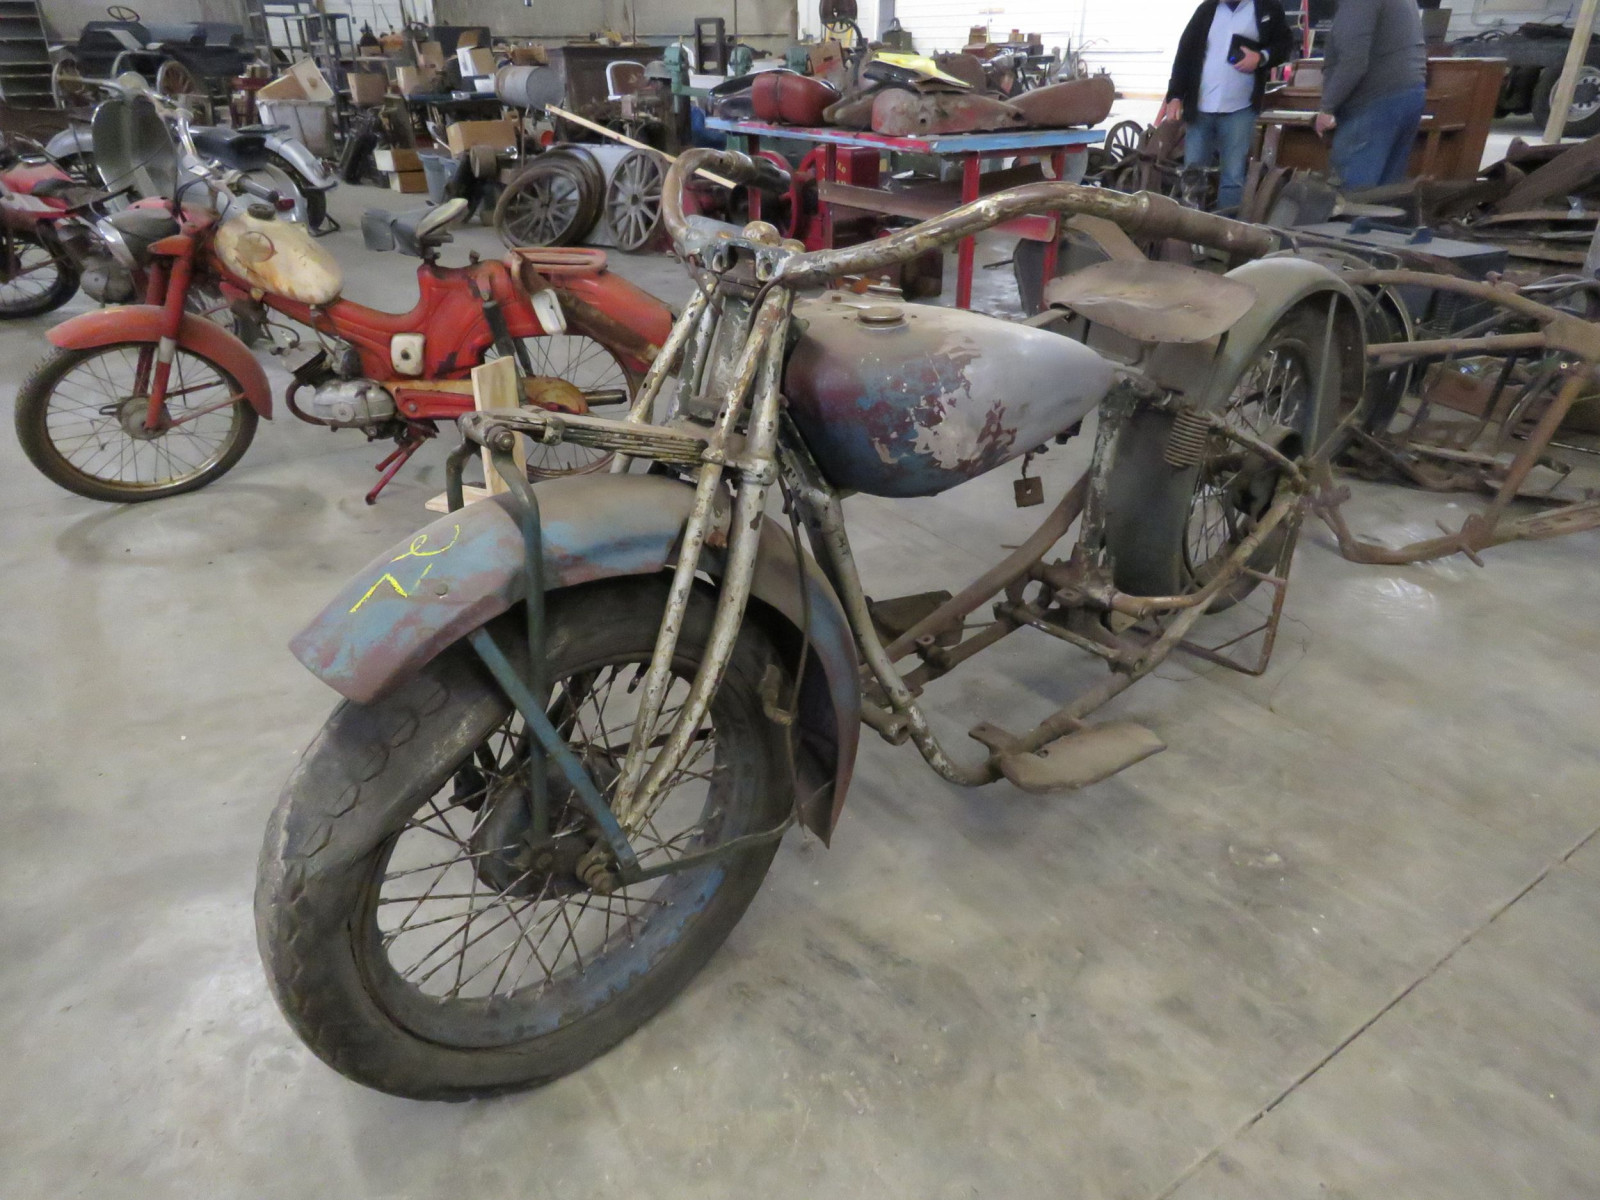 RARE 1929 Indian V-Twin Motorcycle - Image 1